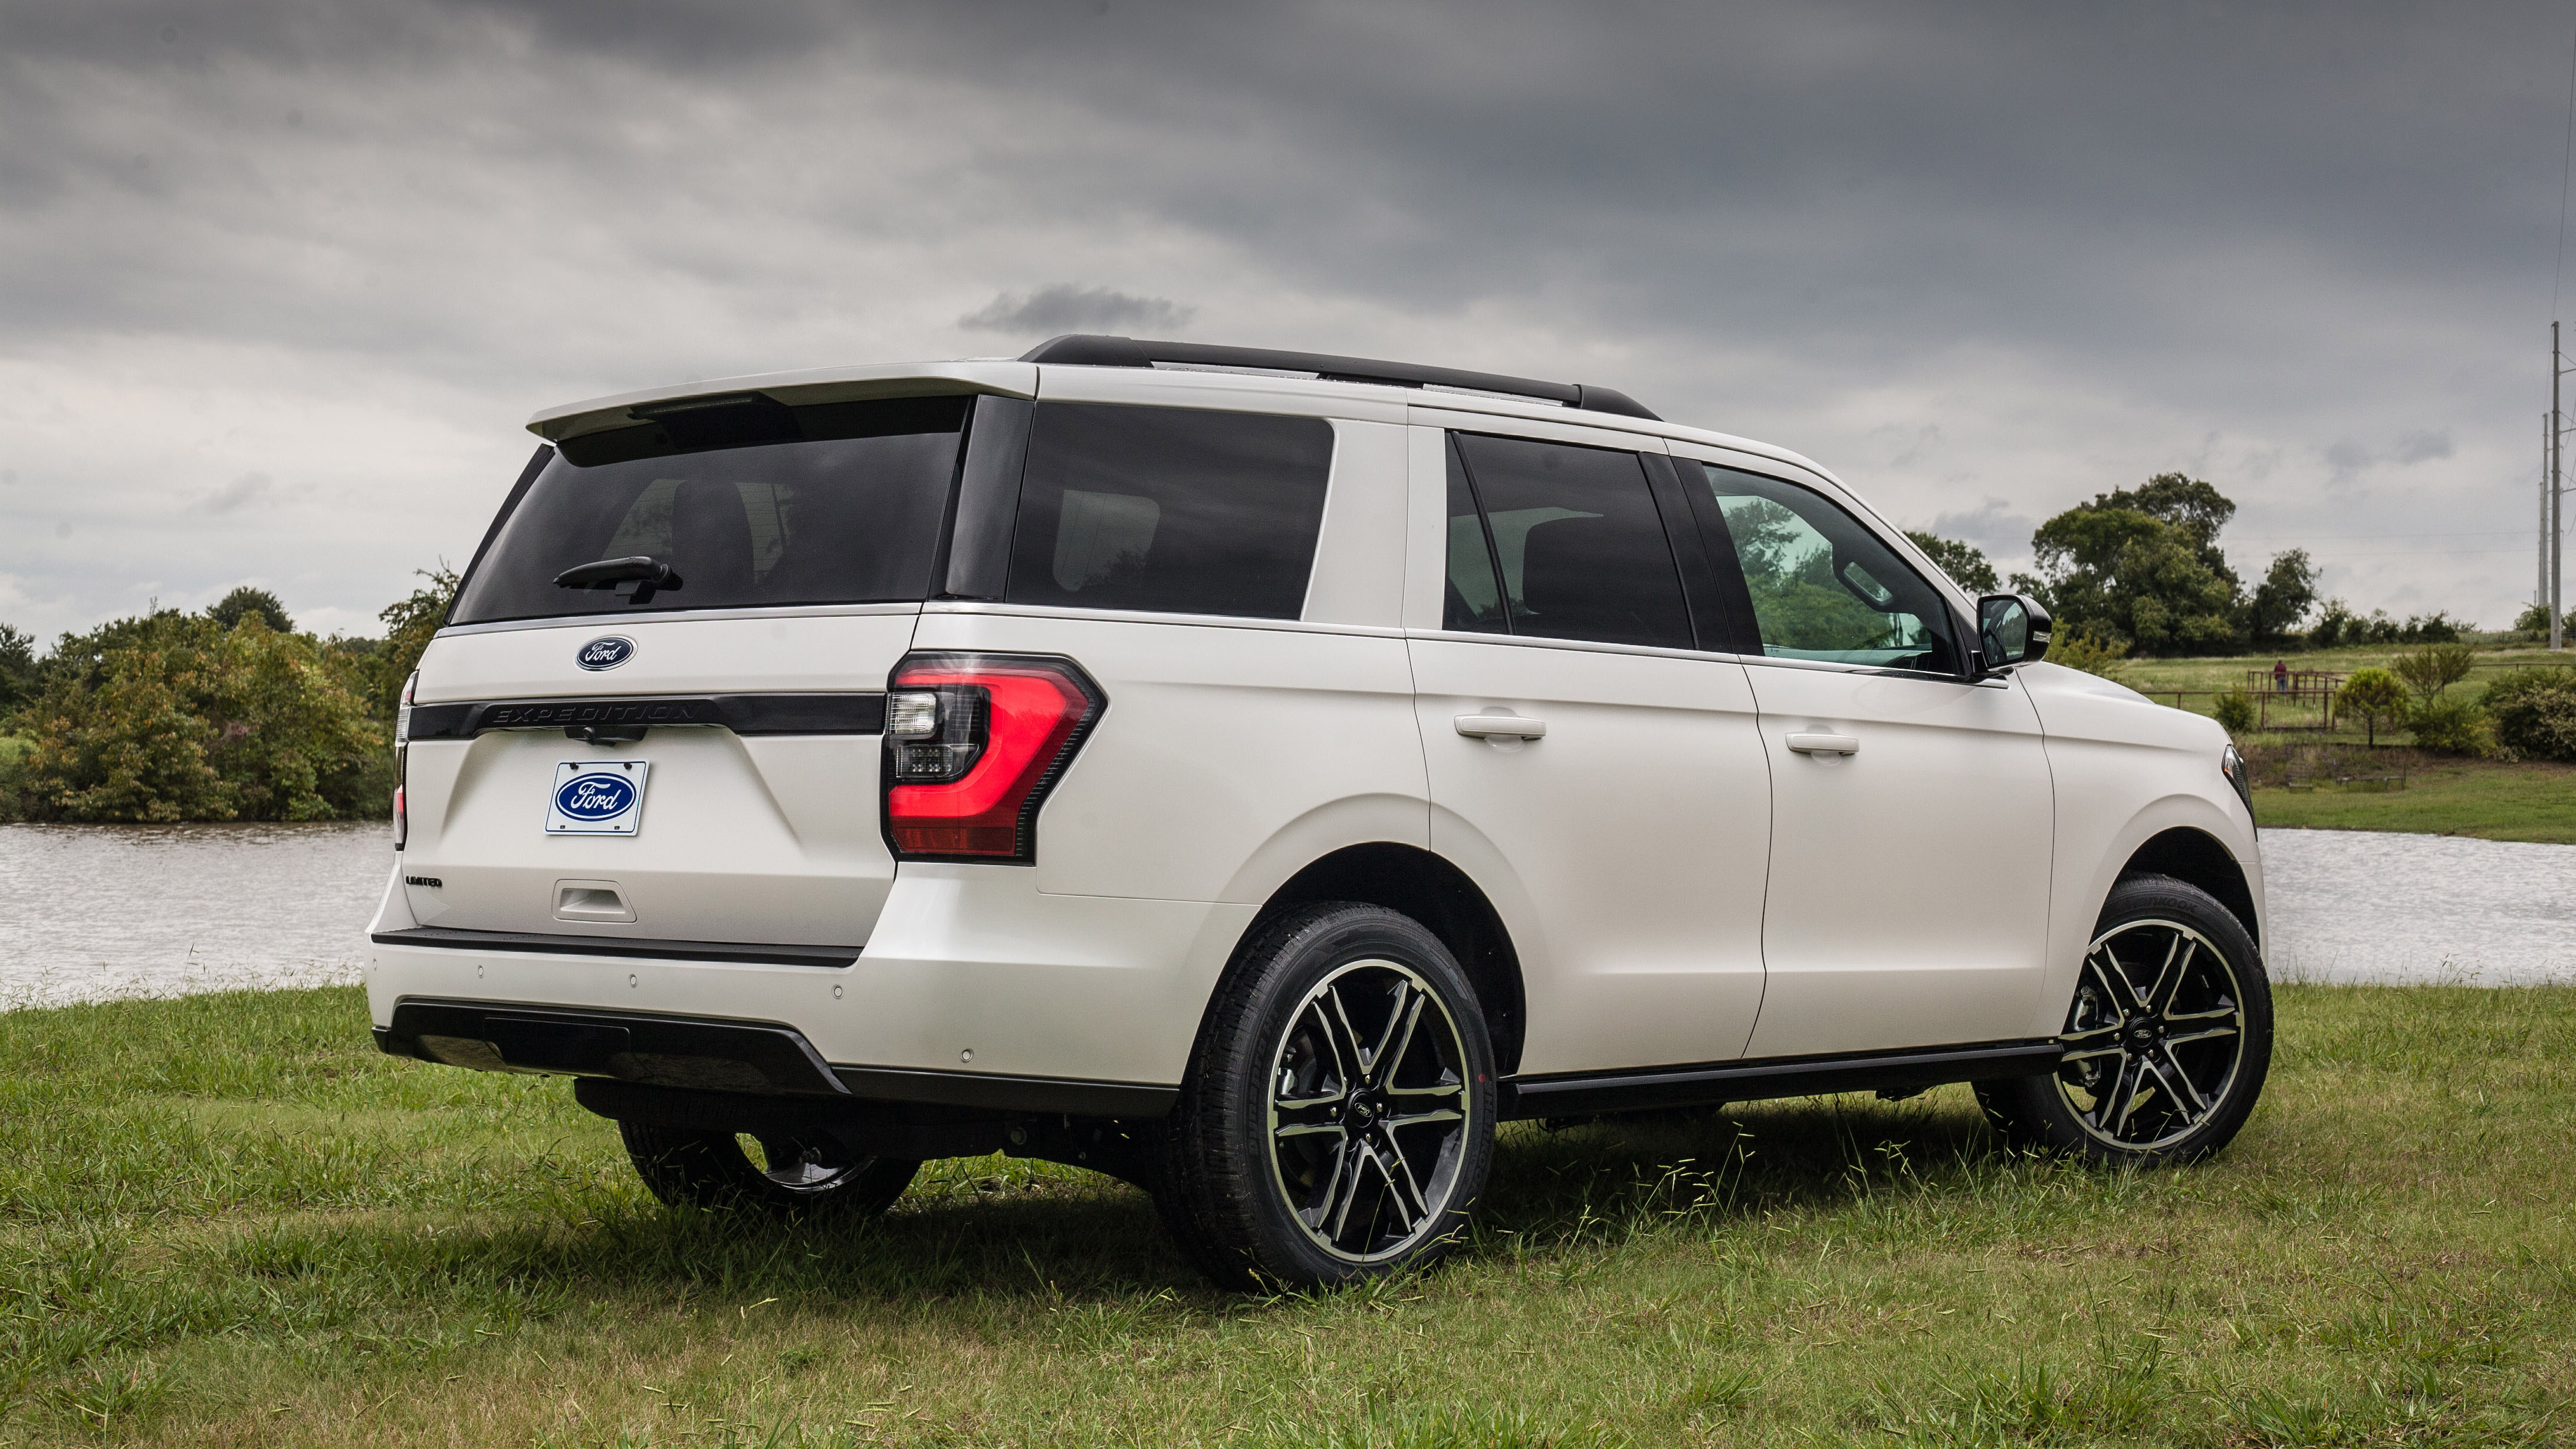 Ford Explorer suv restyling